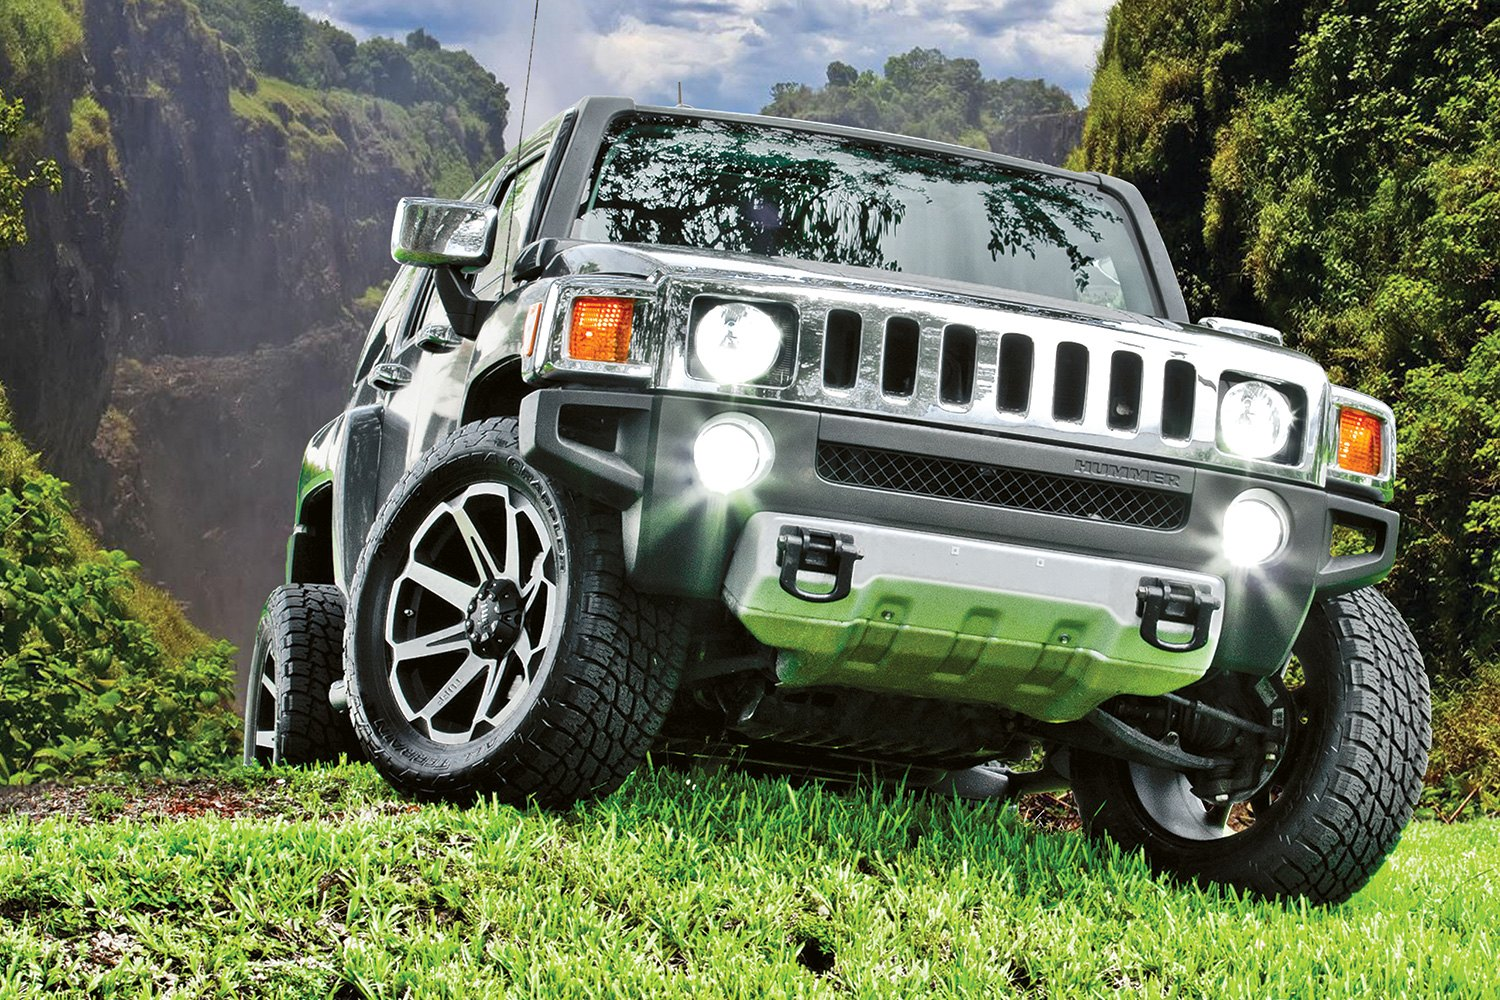 Tuff: Spec Tech: The Whole Tuff And Nothing But The Tuff – Fondos de